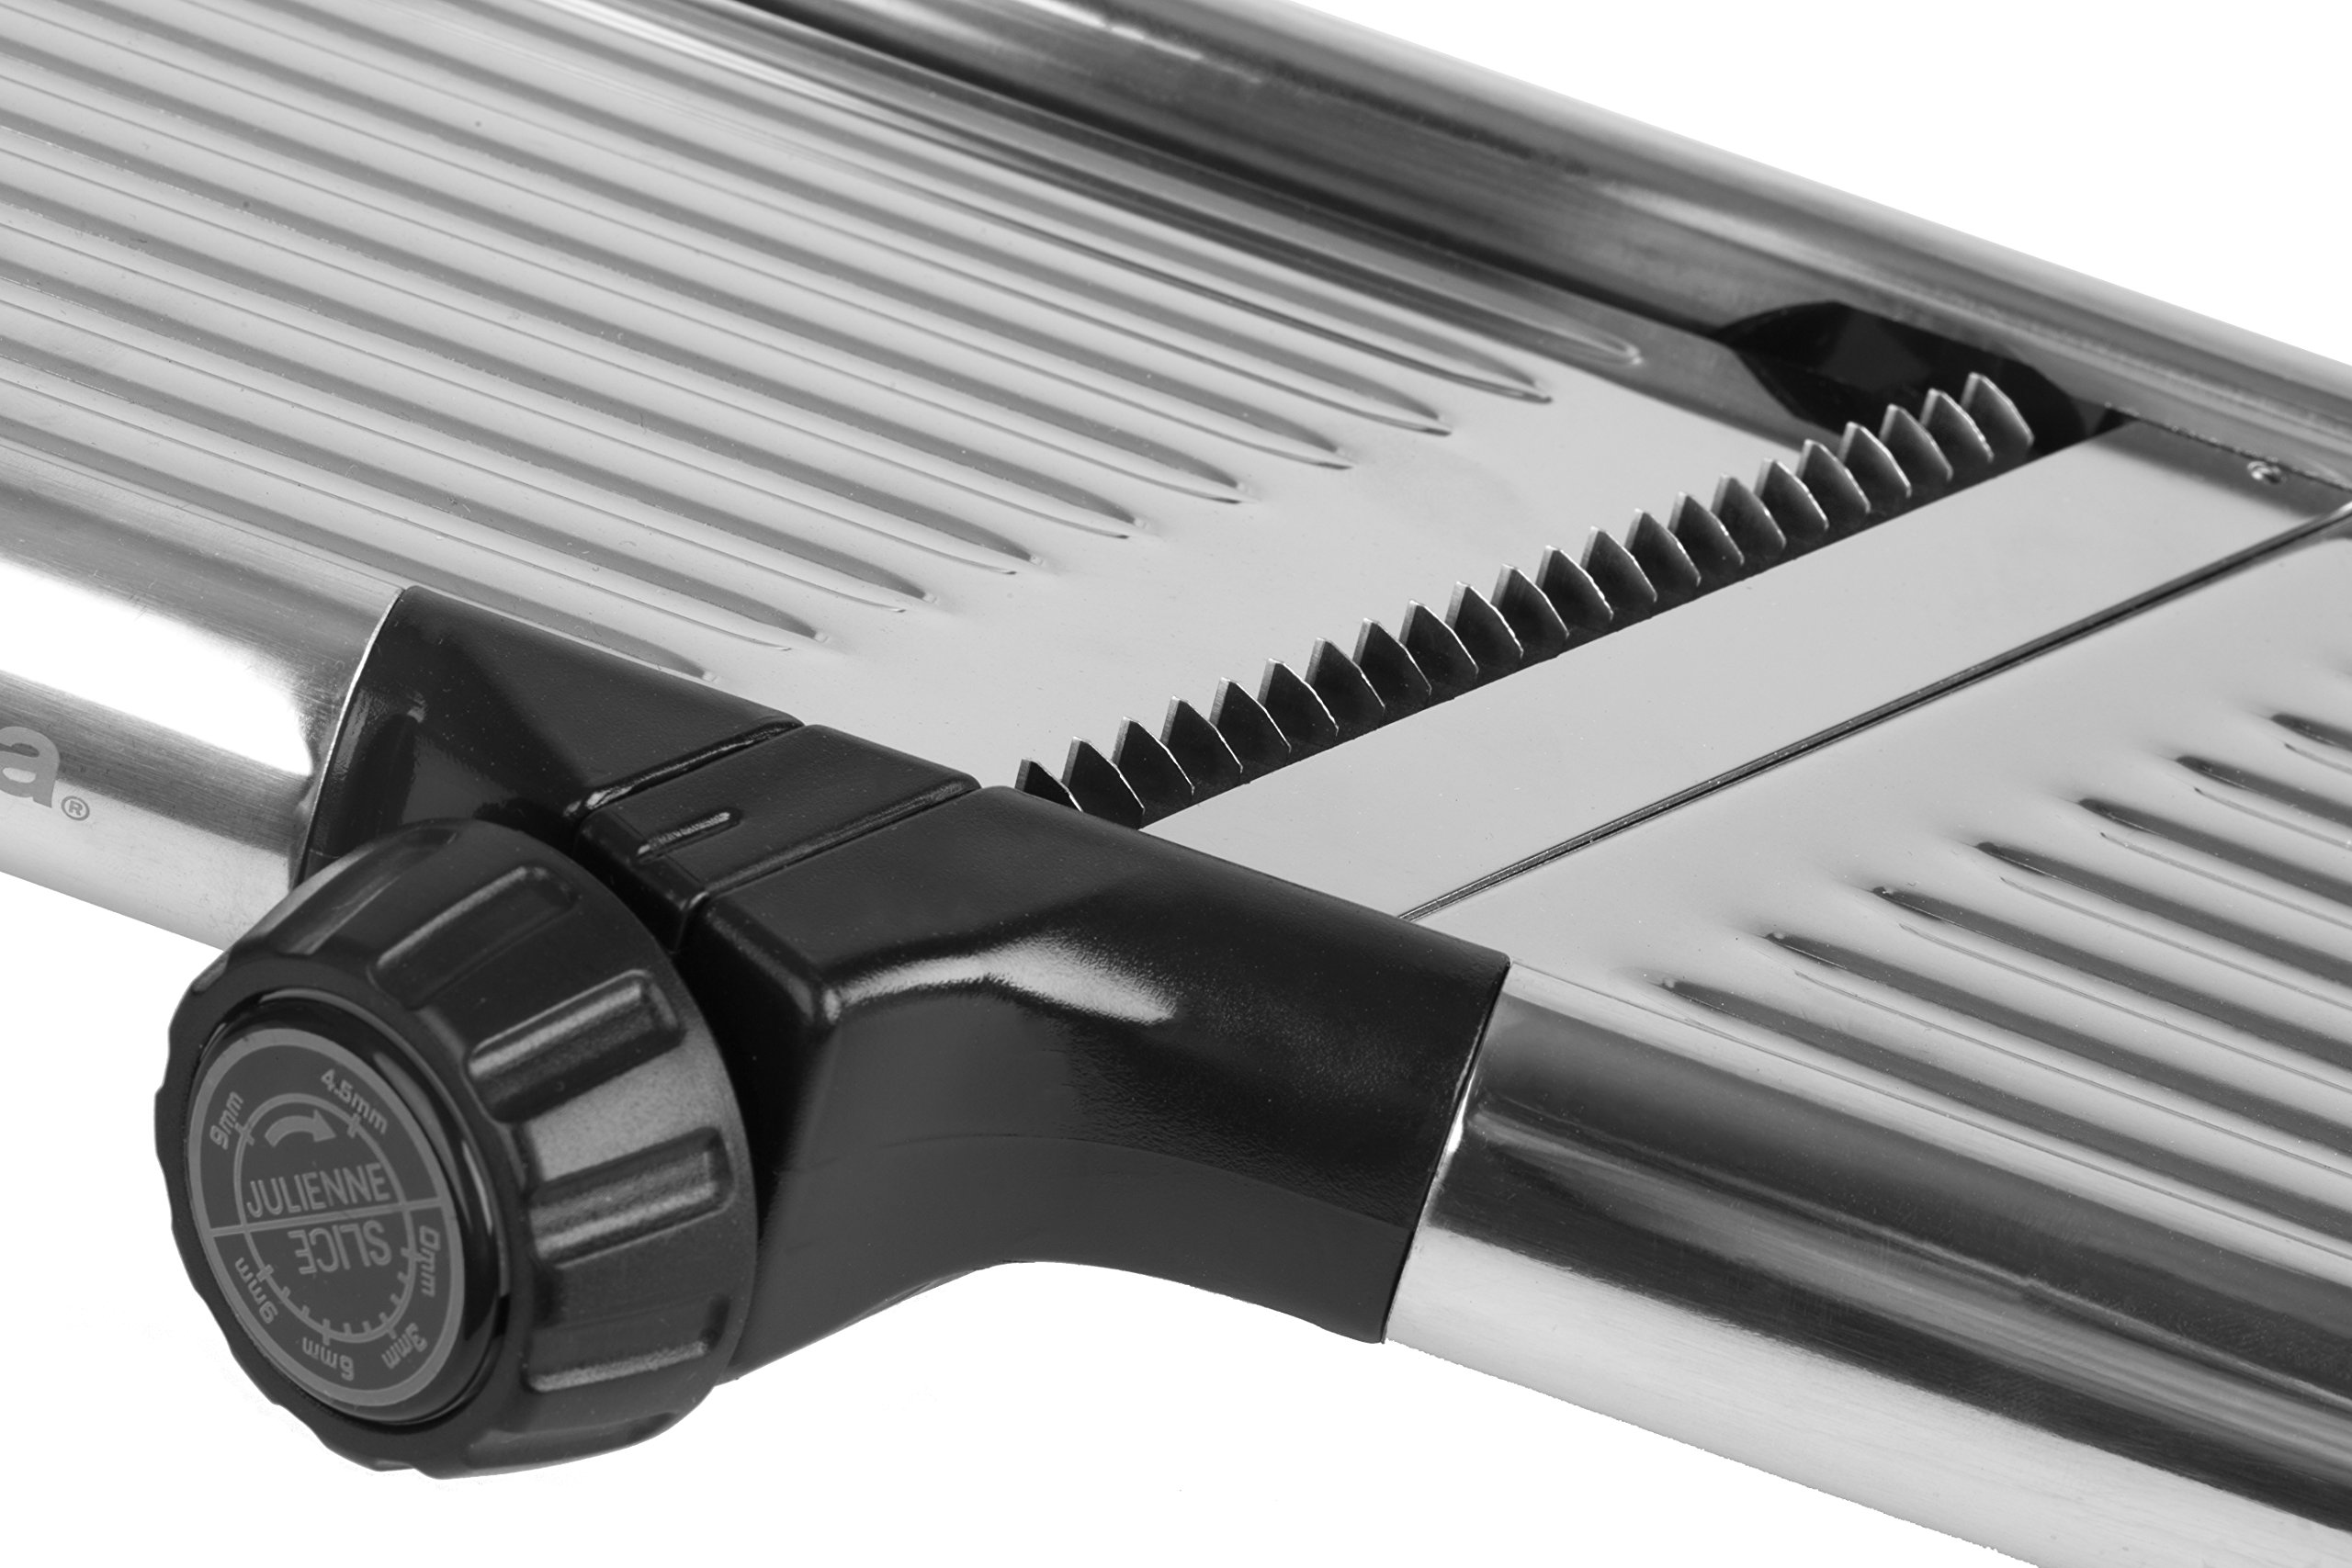 Gourmia GMS9105 Adjustable Stainless Steel Mandoline Slicer Dial-Style Kitchen Slicer With Built in Adjustable Blades Fine to Thick Slice & Julienne Settings by Gourmia (Image #4)